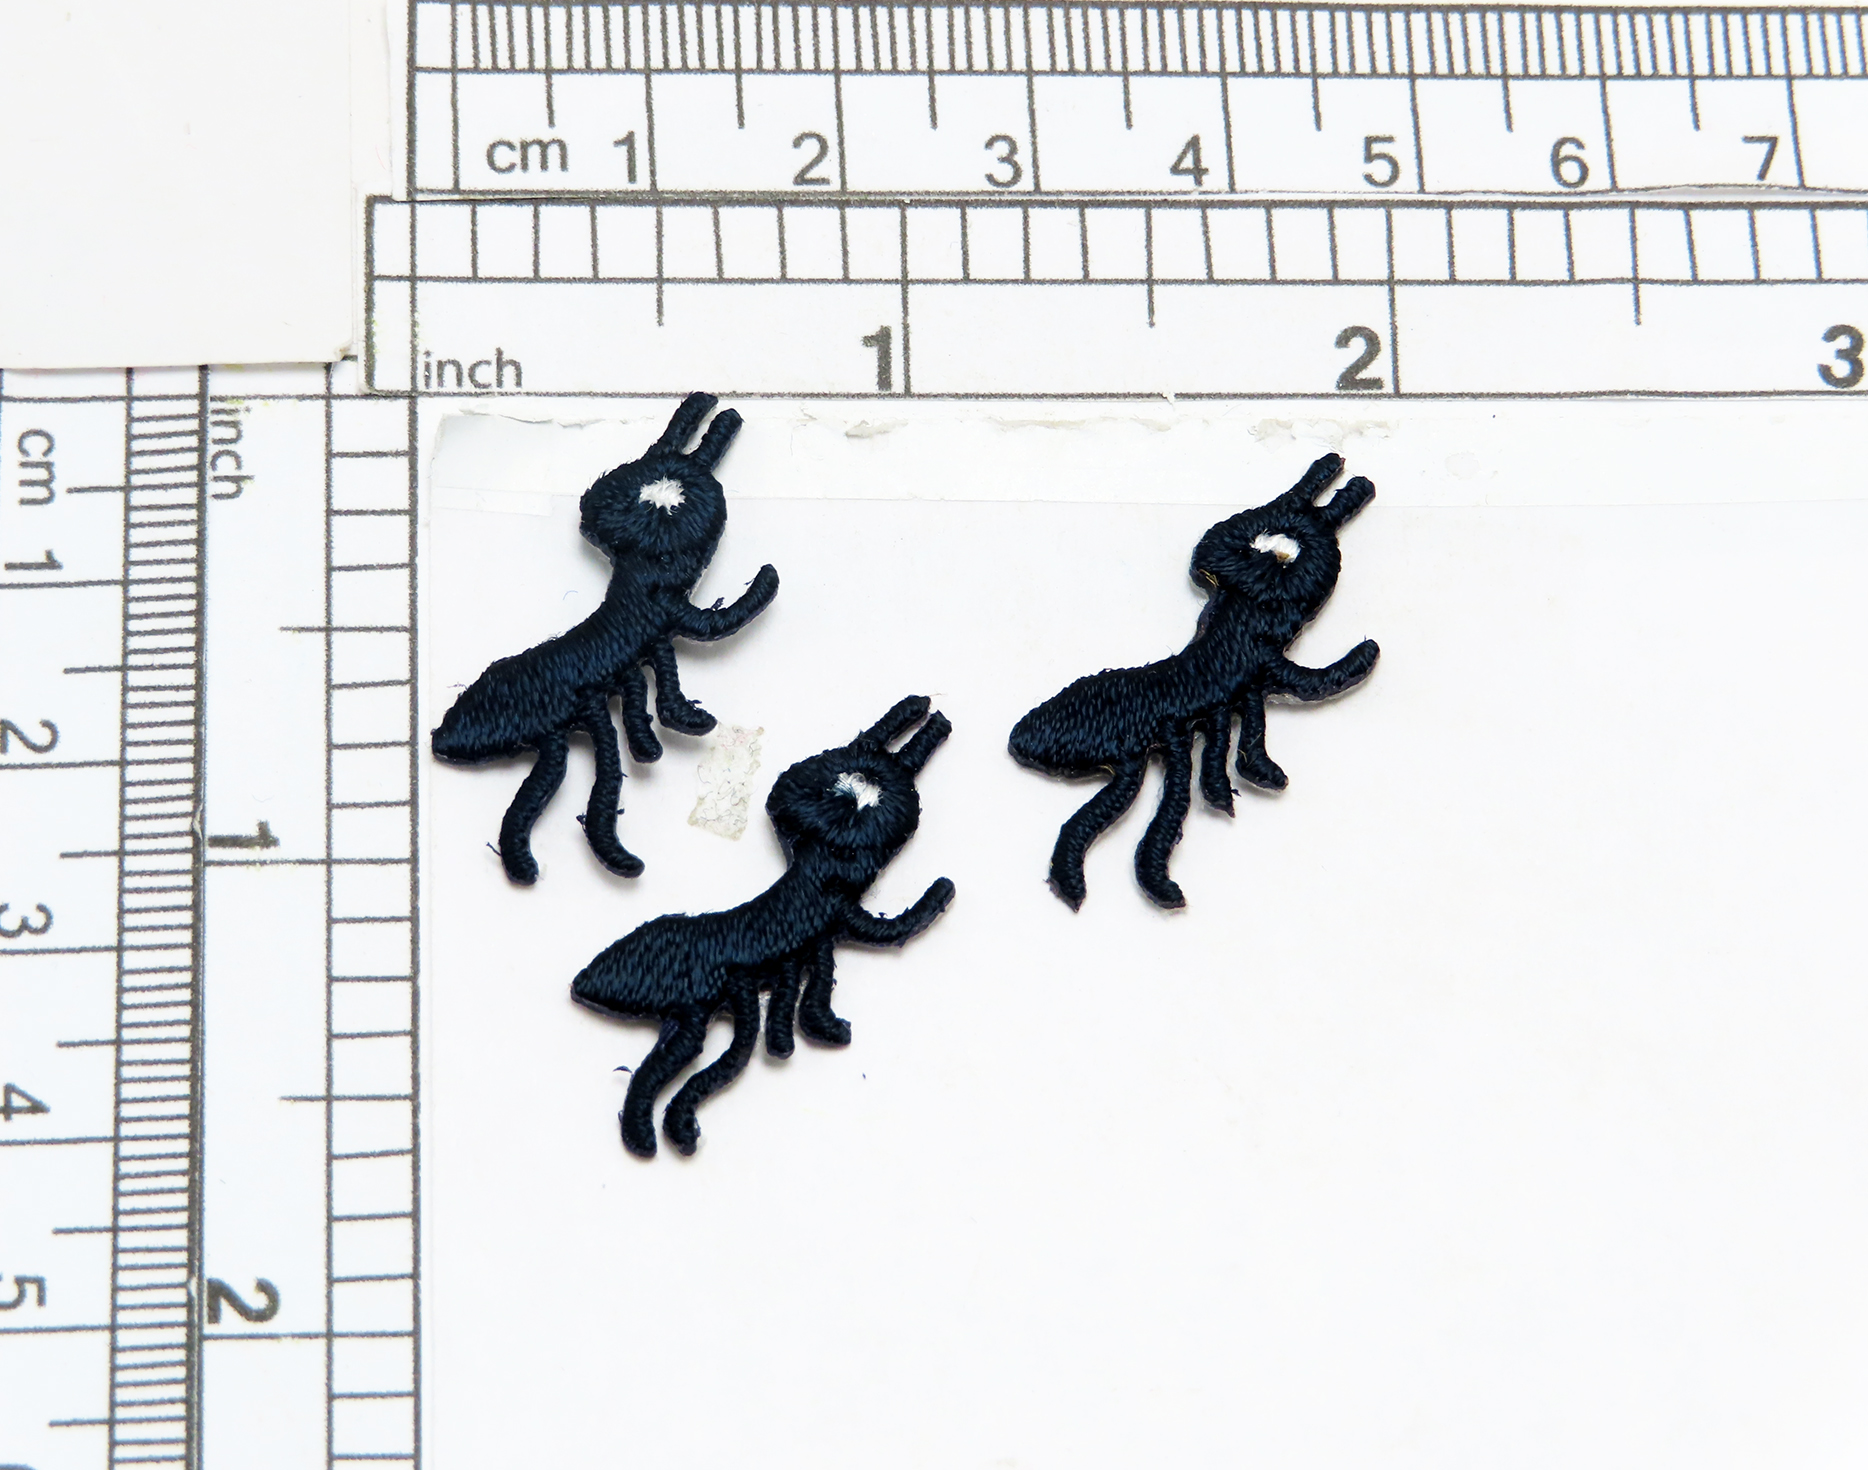 """Ant Iron On Patches x 3  Fully Embroidered in Rayon Threads Measures 3/4"""" across x 1 1/8"""" high"""